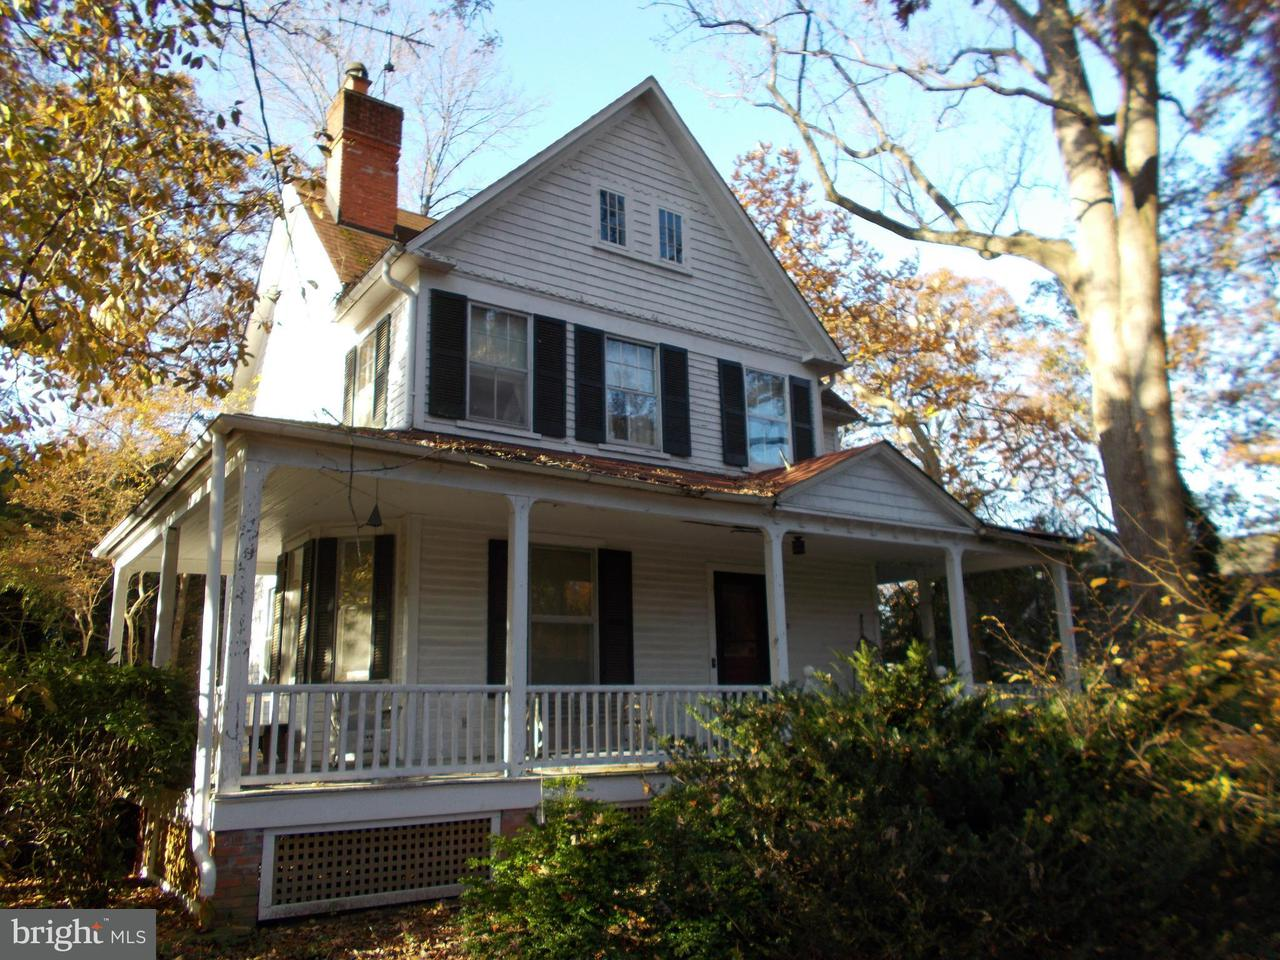 Single Family Home for Sale at 11112 KENILWORTH Avenue 11112 KENILWORTH Avenue Garrett Park, Maryland 20896 United States